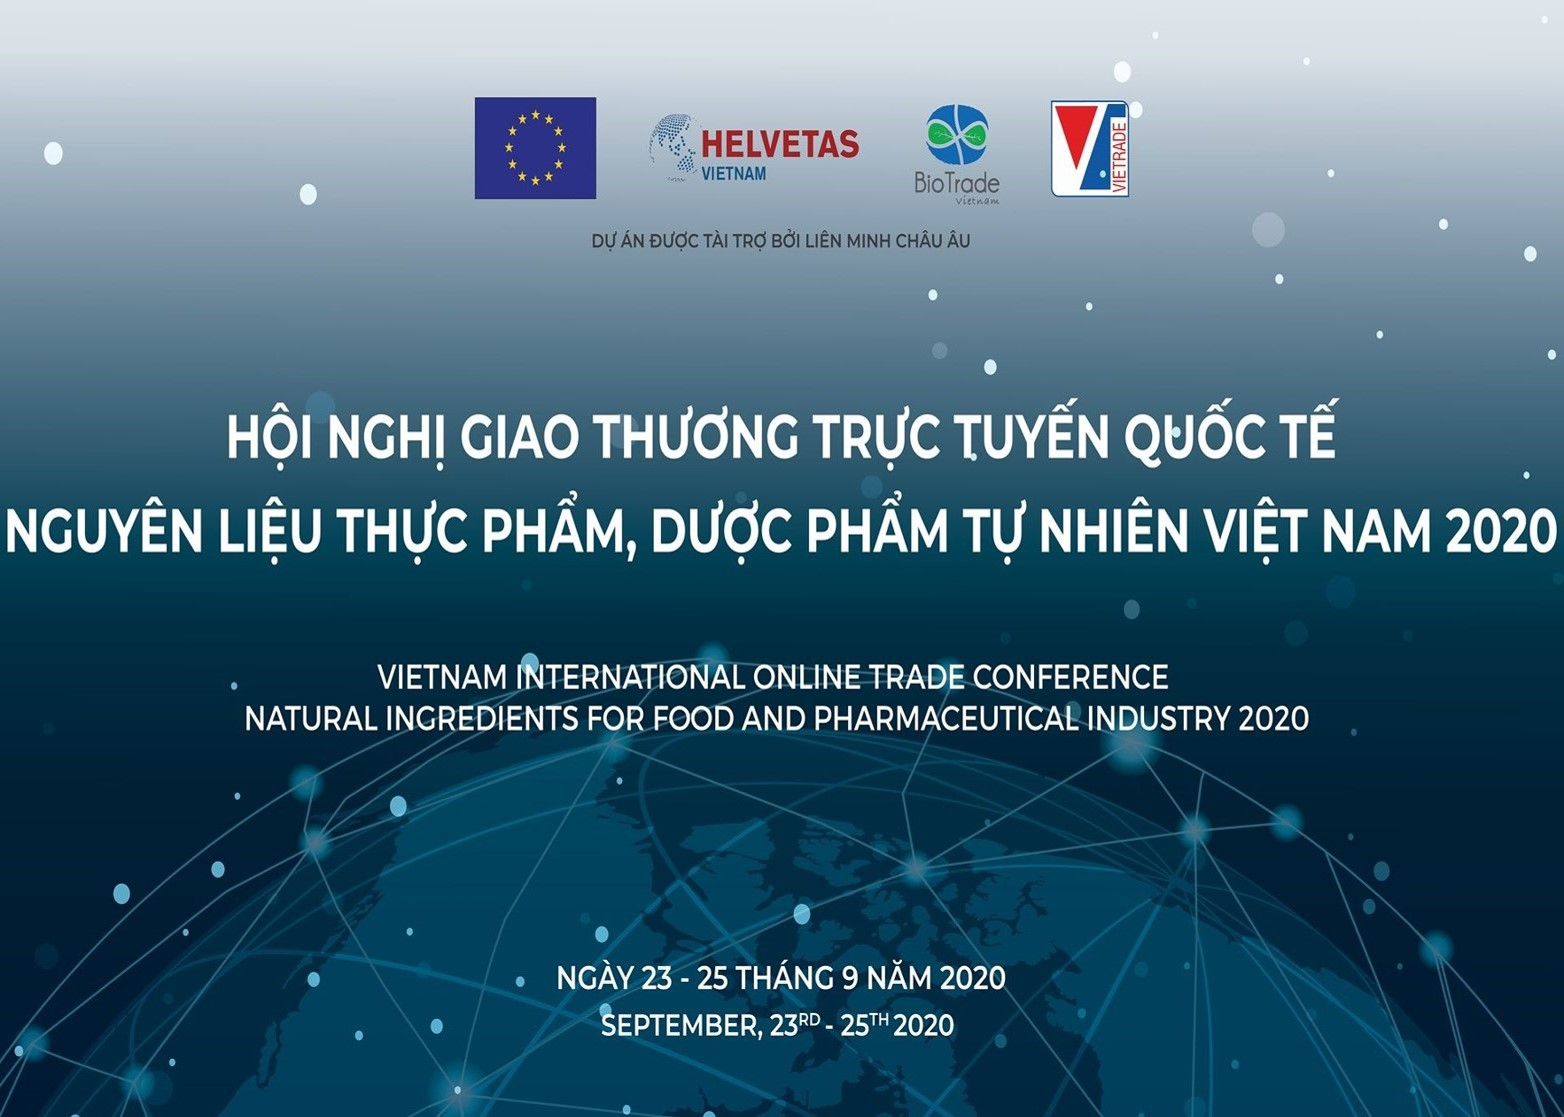 Visimex joins Vietnam International Business Networking webinar on natural ingredients for food & pharmaceutical industry 2020